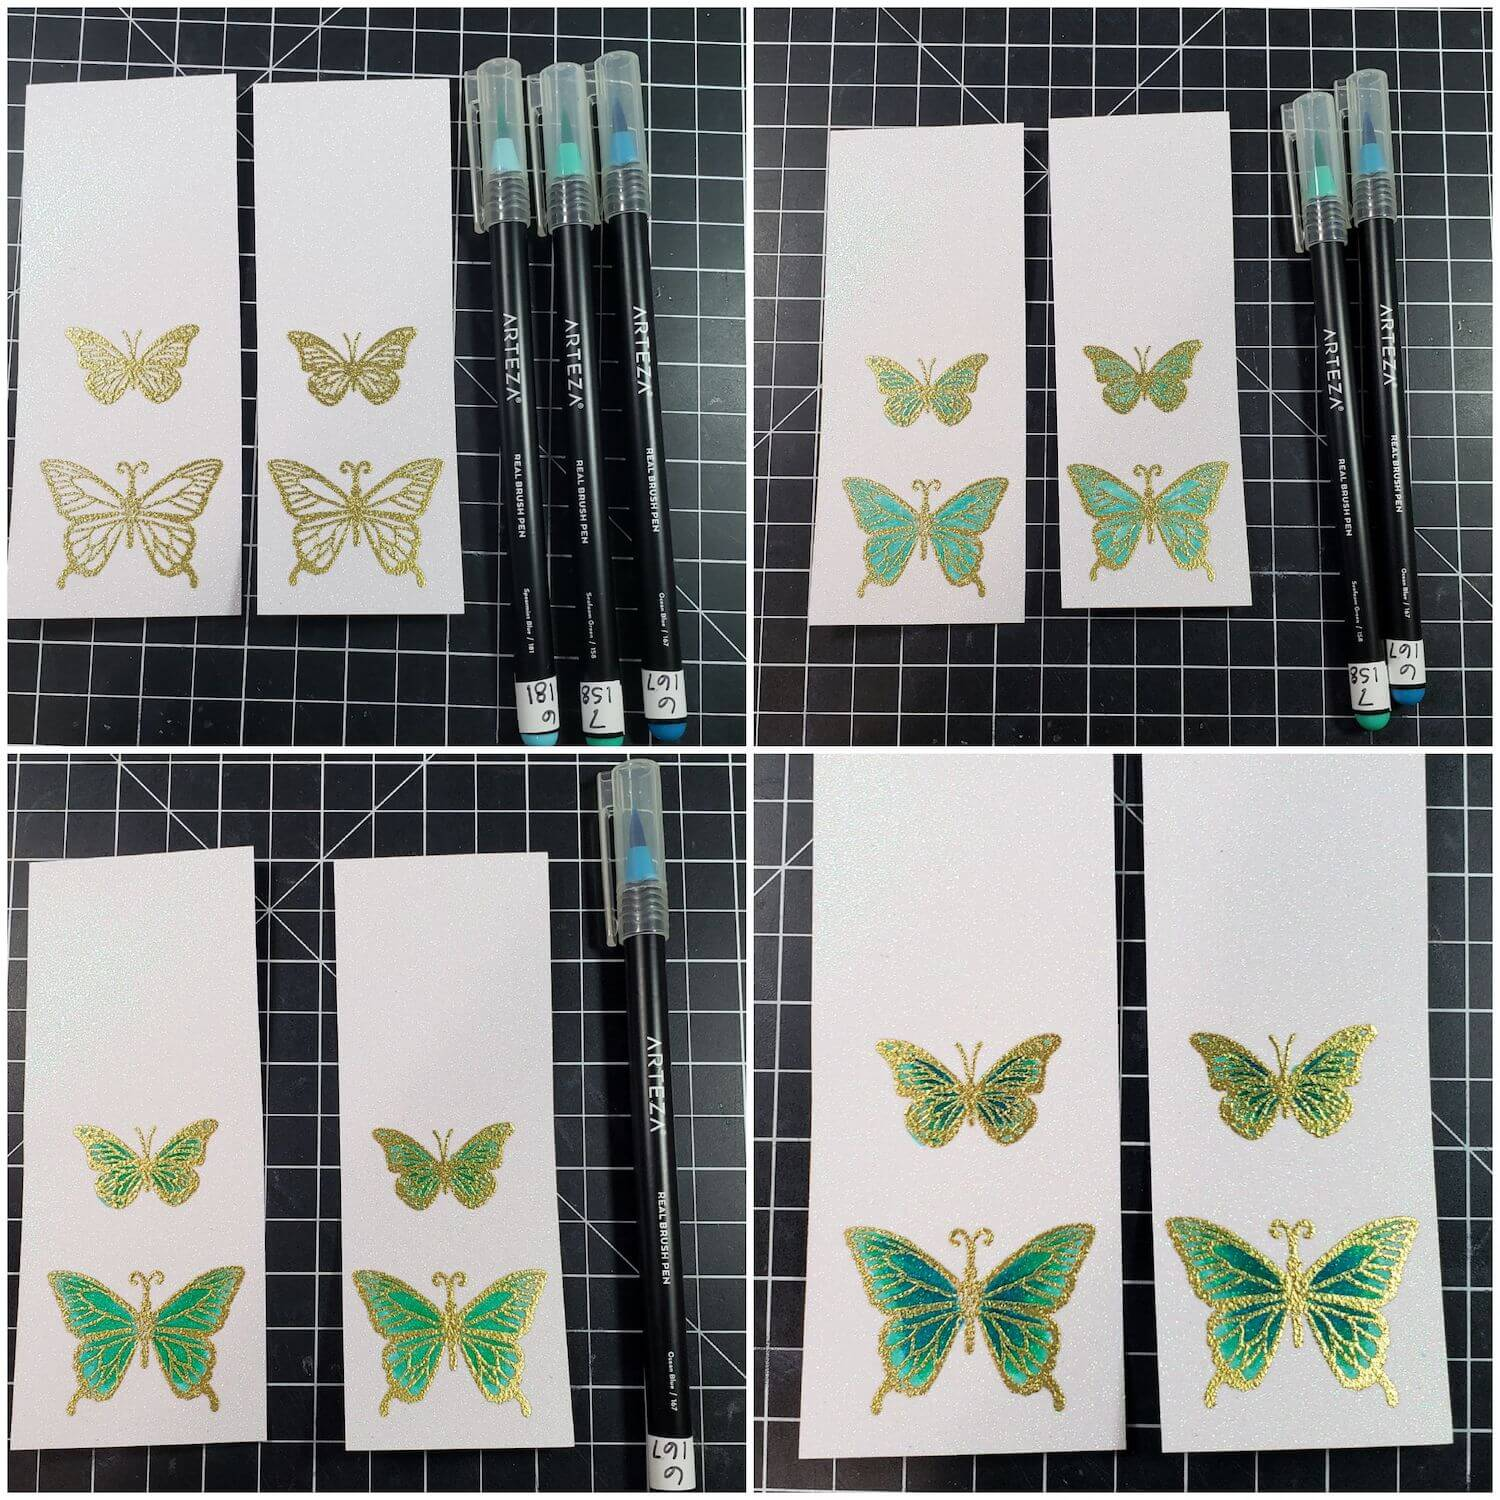 Coloring stamped butterflies